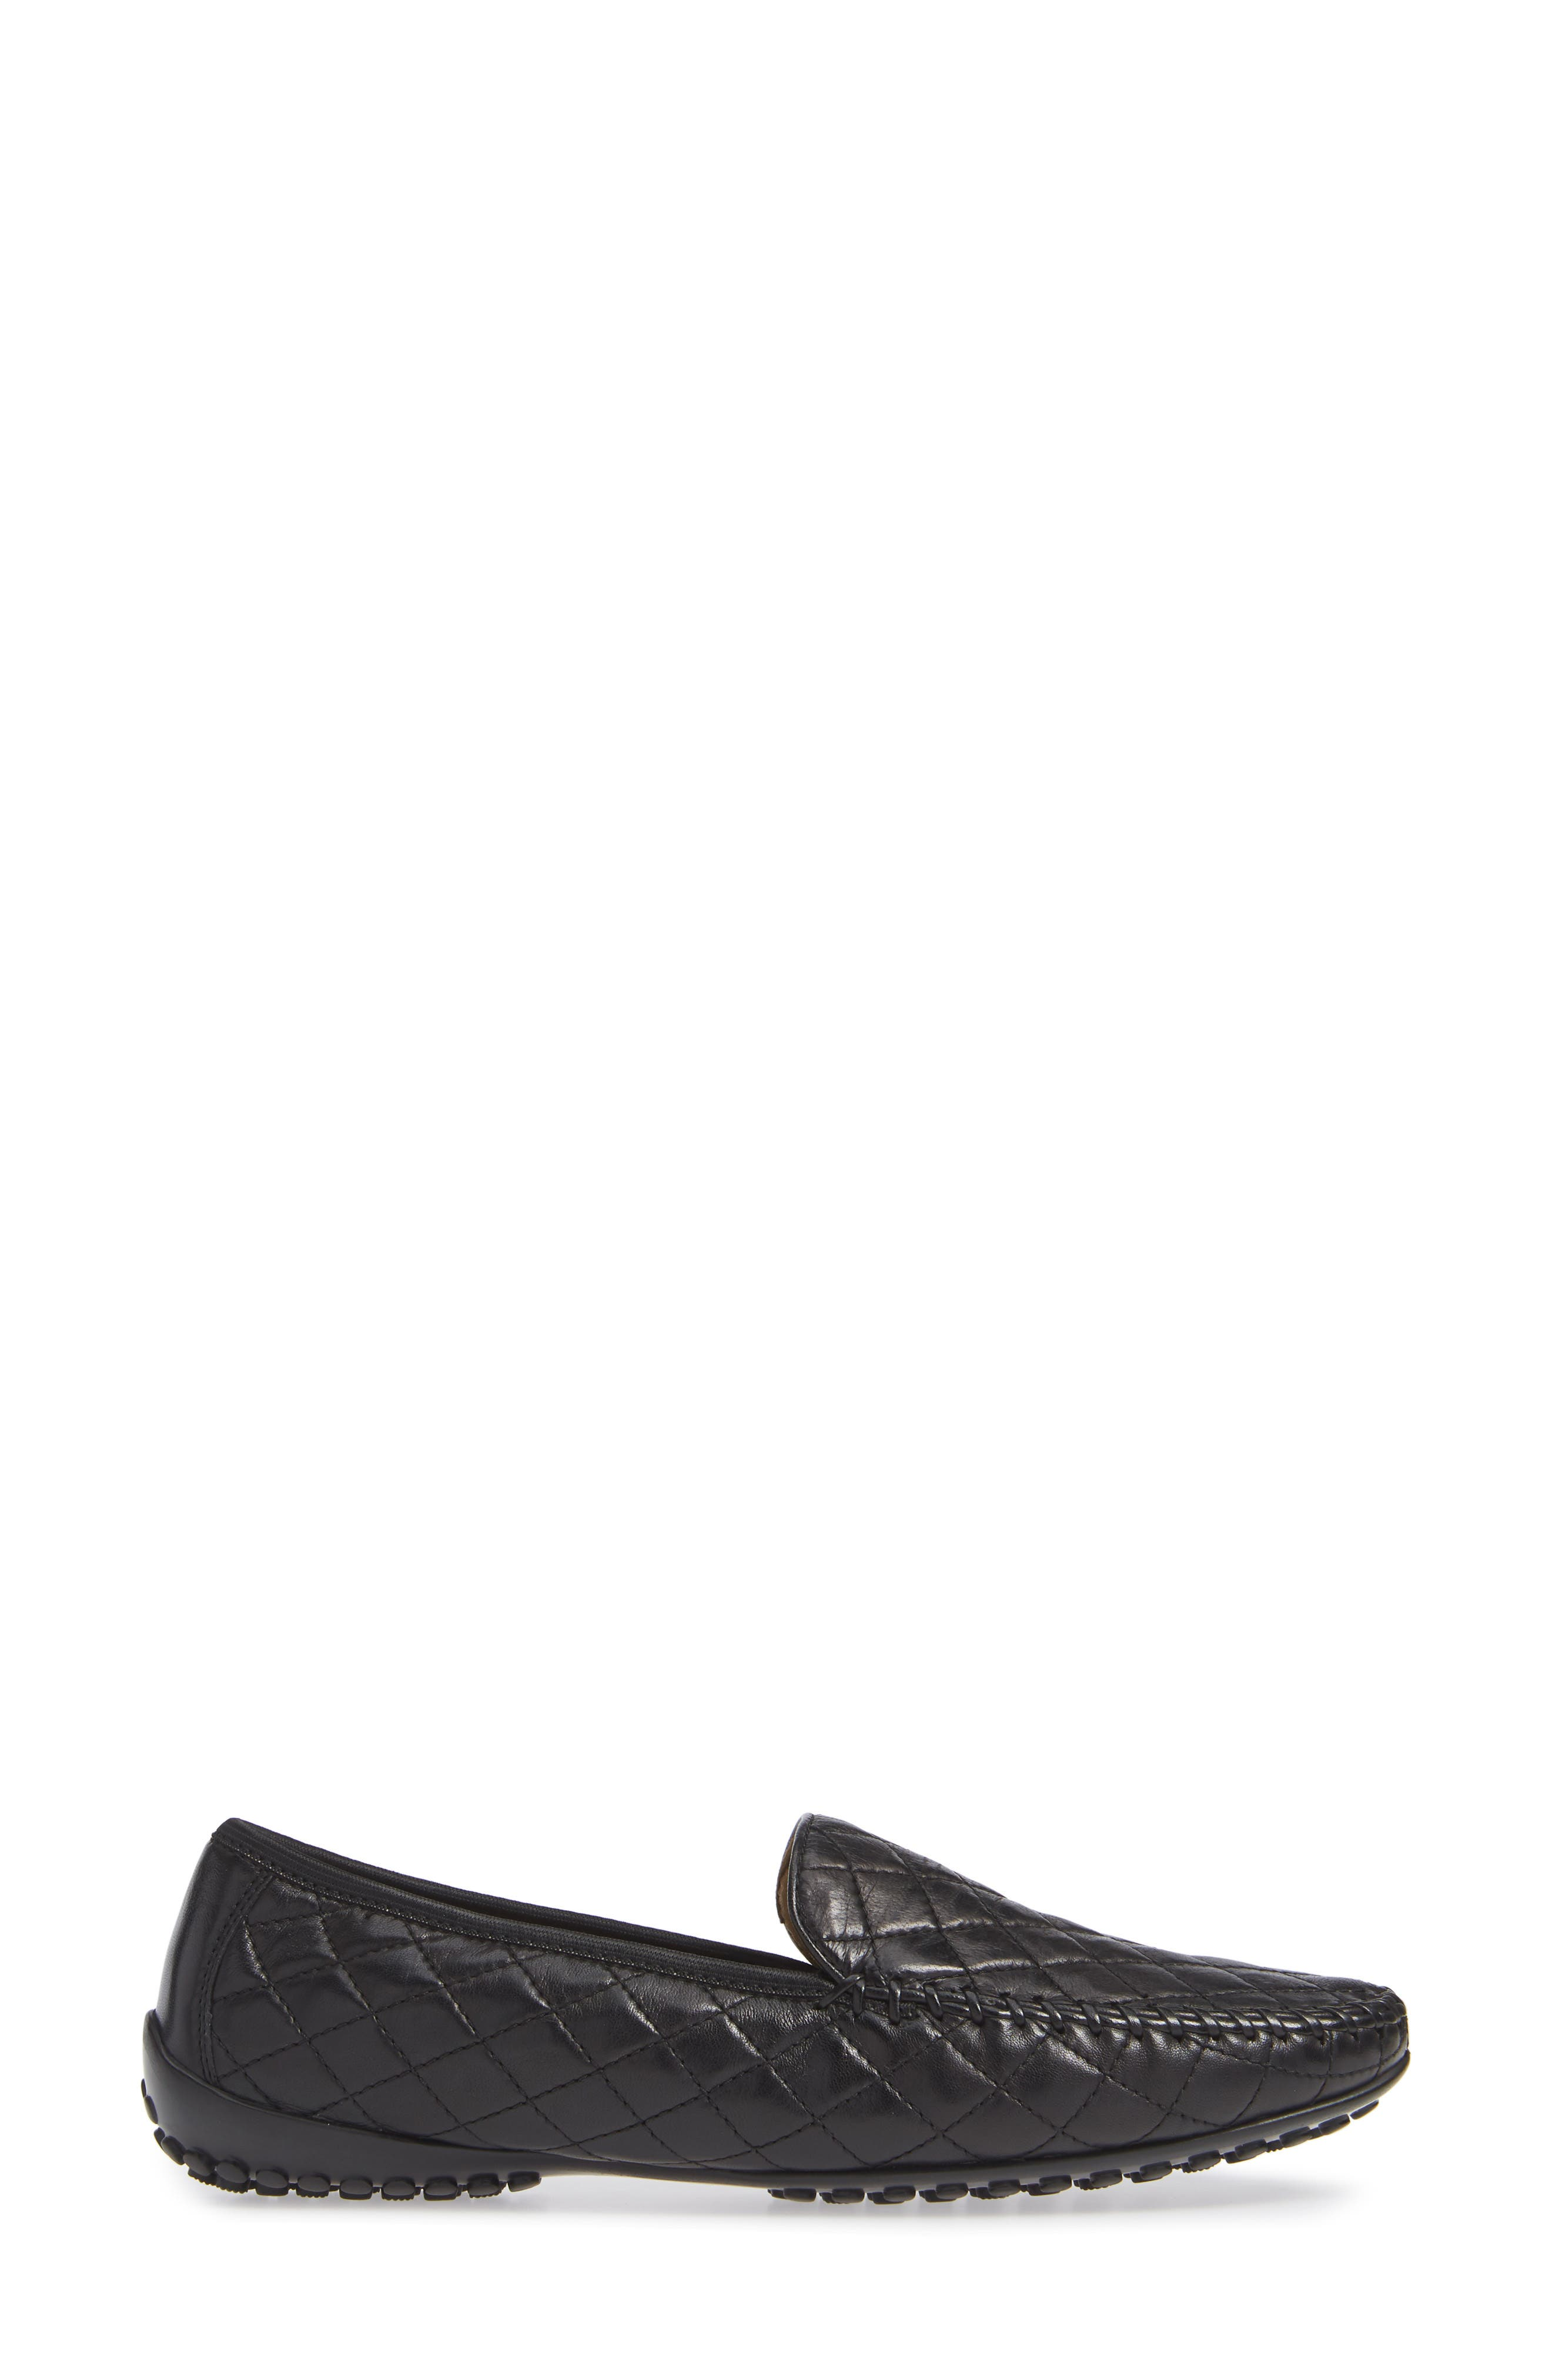 'Quana' Loafer,                             Alternate thumbnail 3, color,                             BLACK